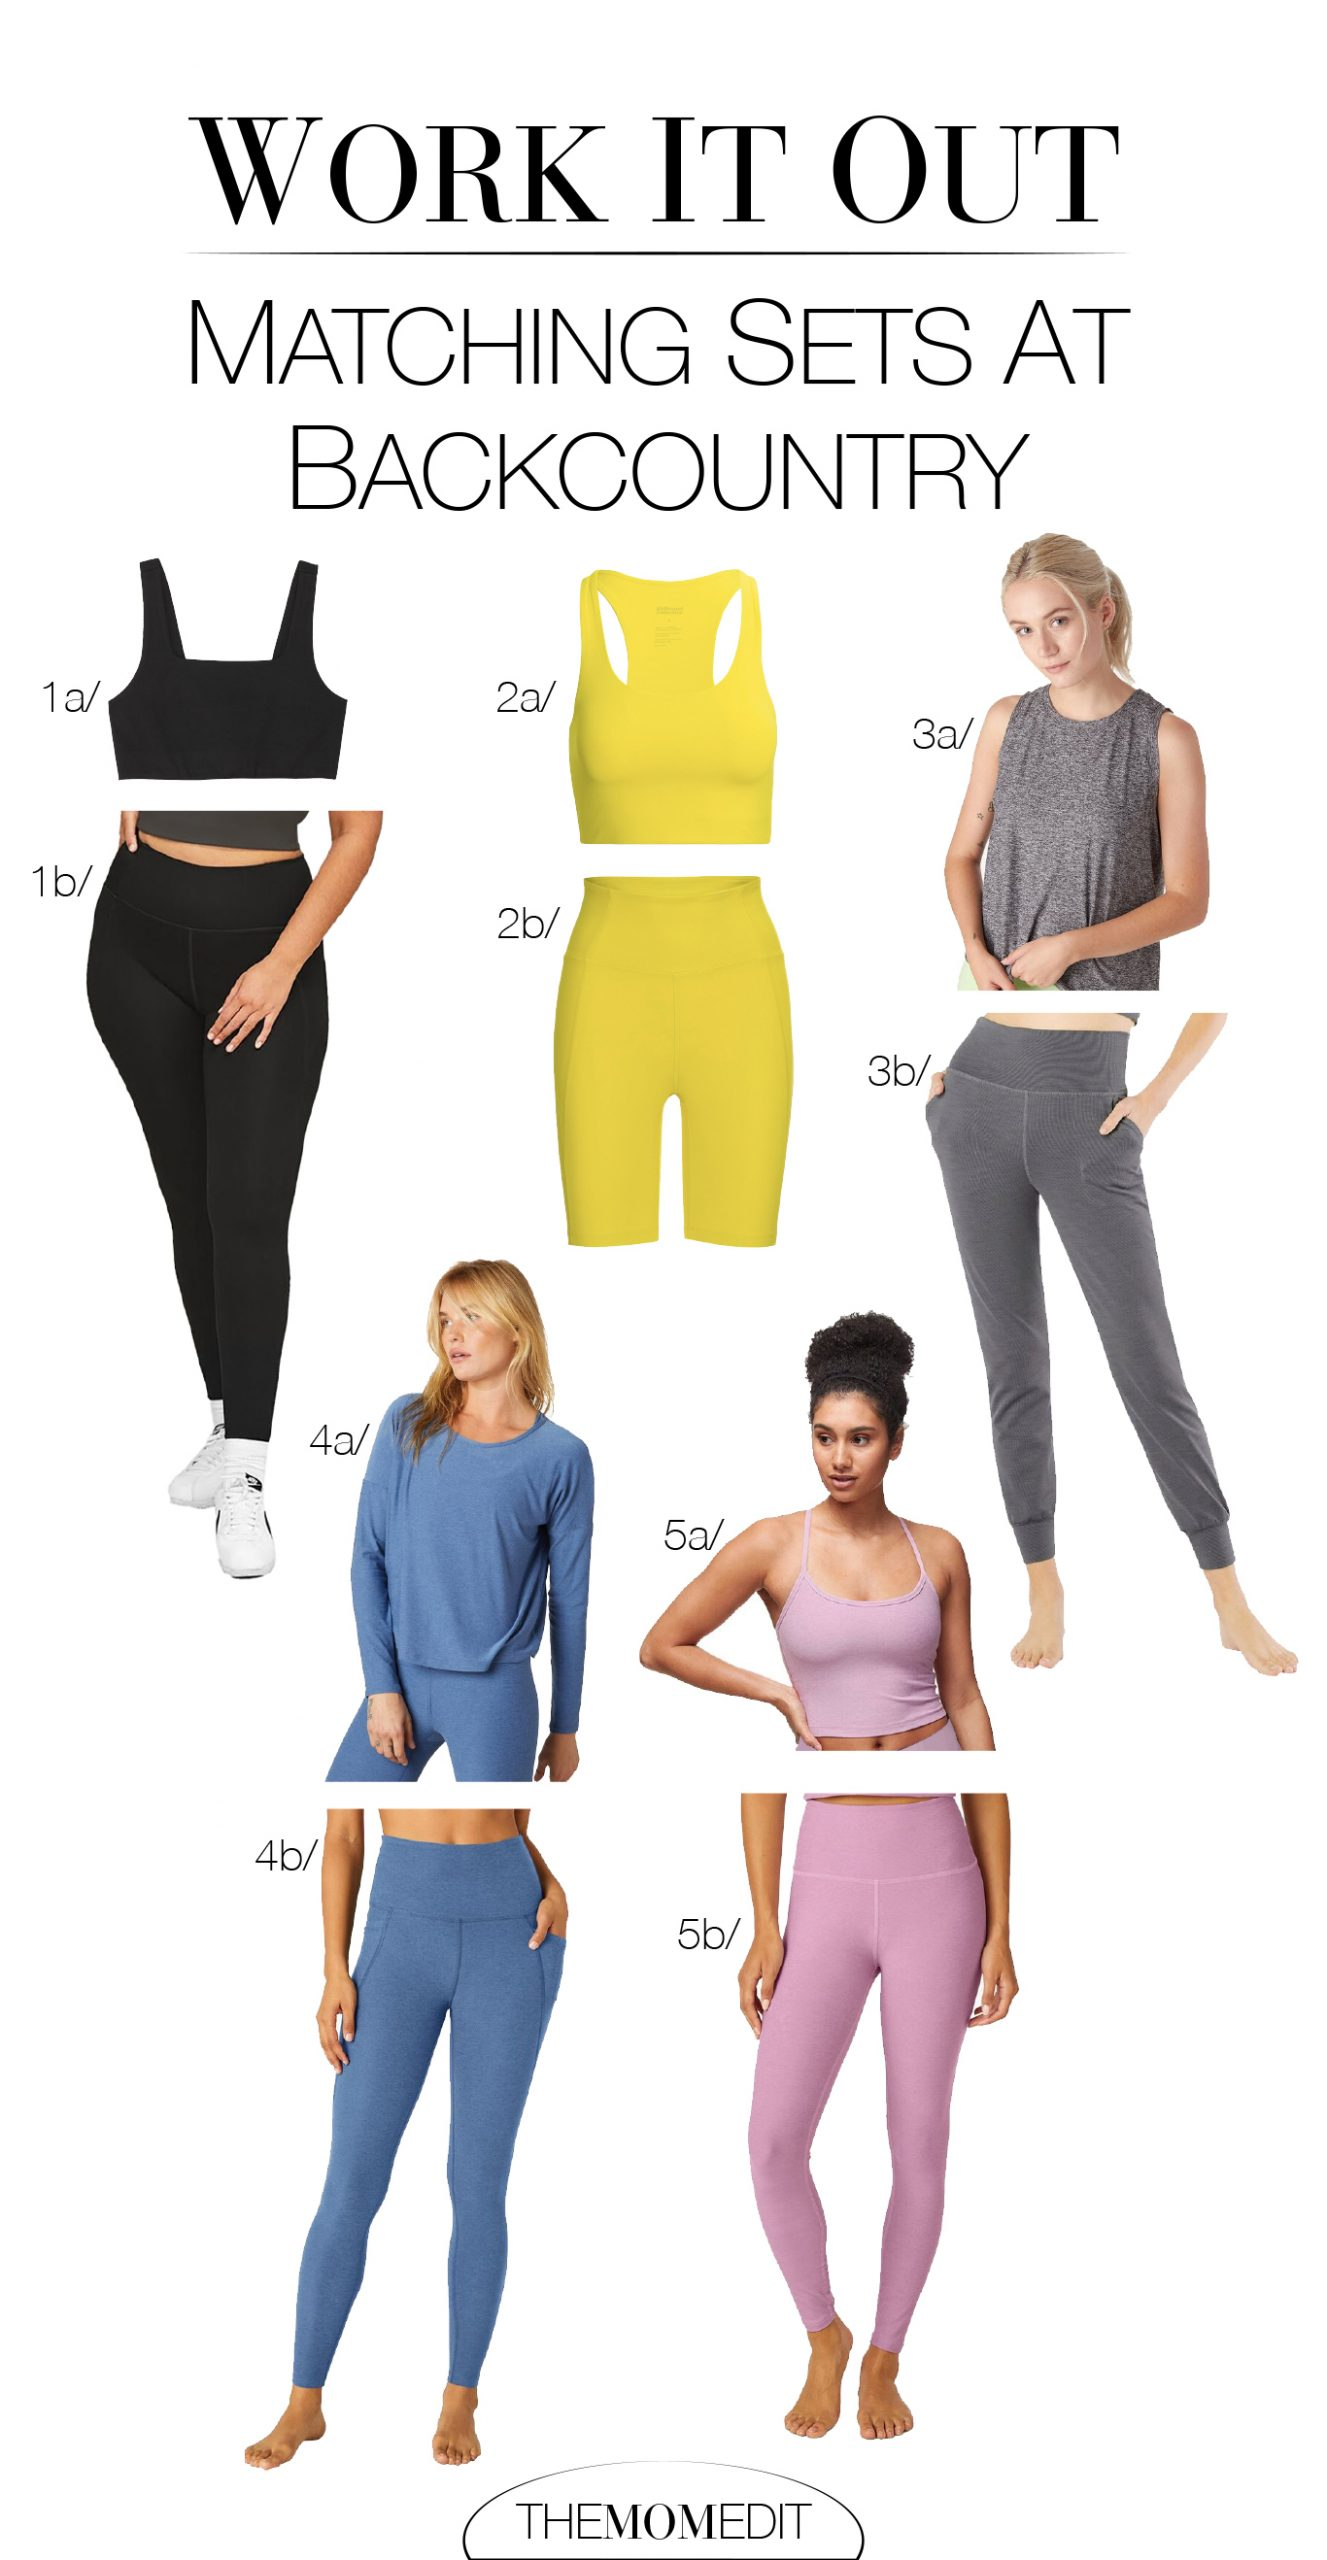 Yoga is a much-needed change of pace, so cute workout sets & cool yoga gear are just the zen inspo we need to get our yogi/chi vibes on.